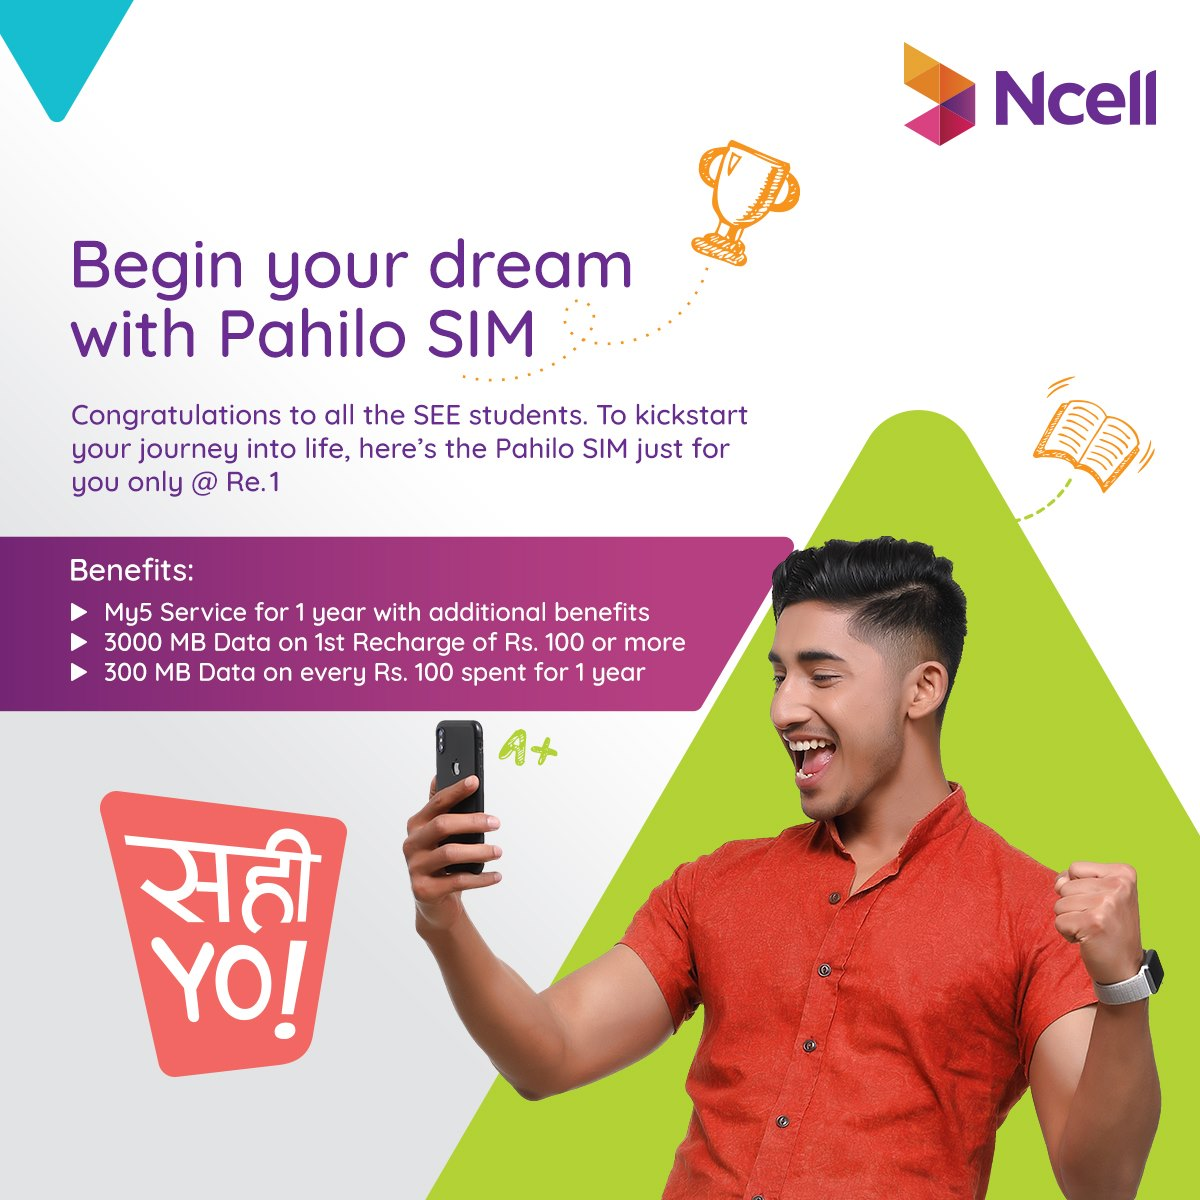 NCell provides SIM Card at Rs. 1 to New SEE Graduates